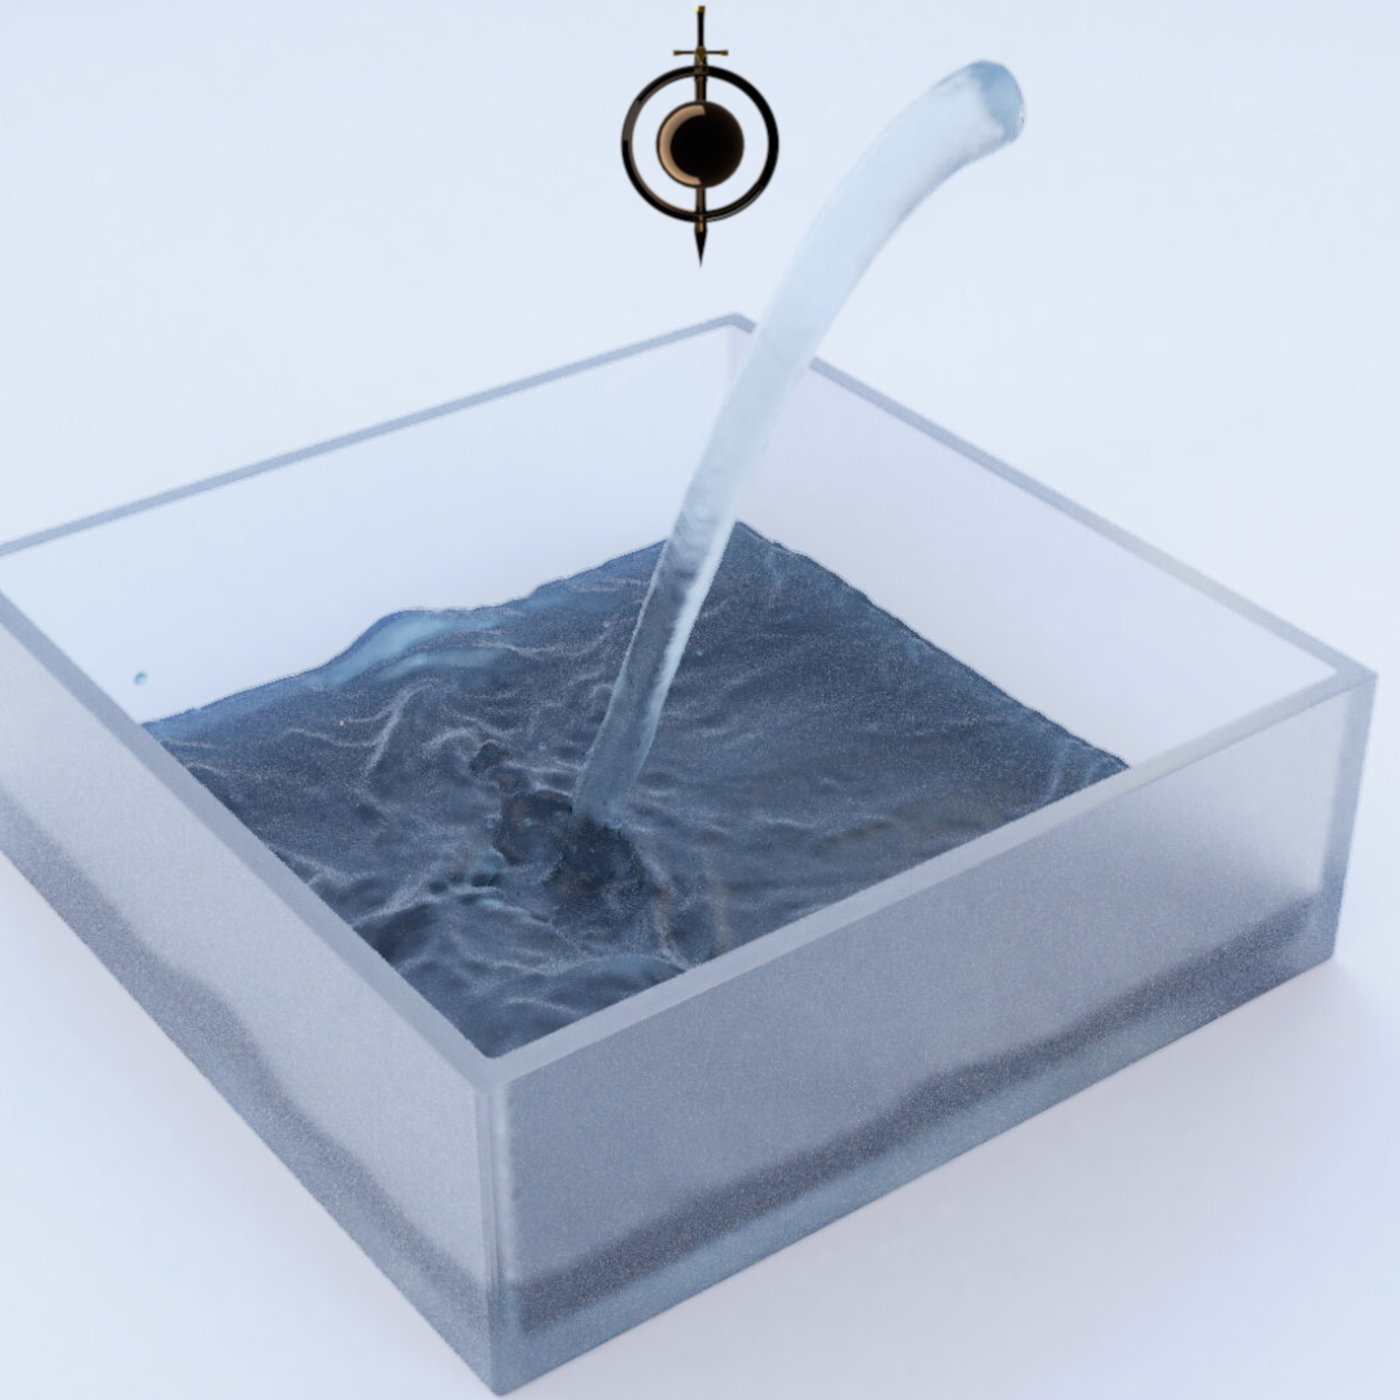 Frosted glass water simulation